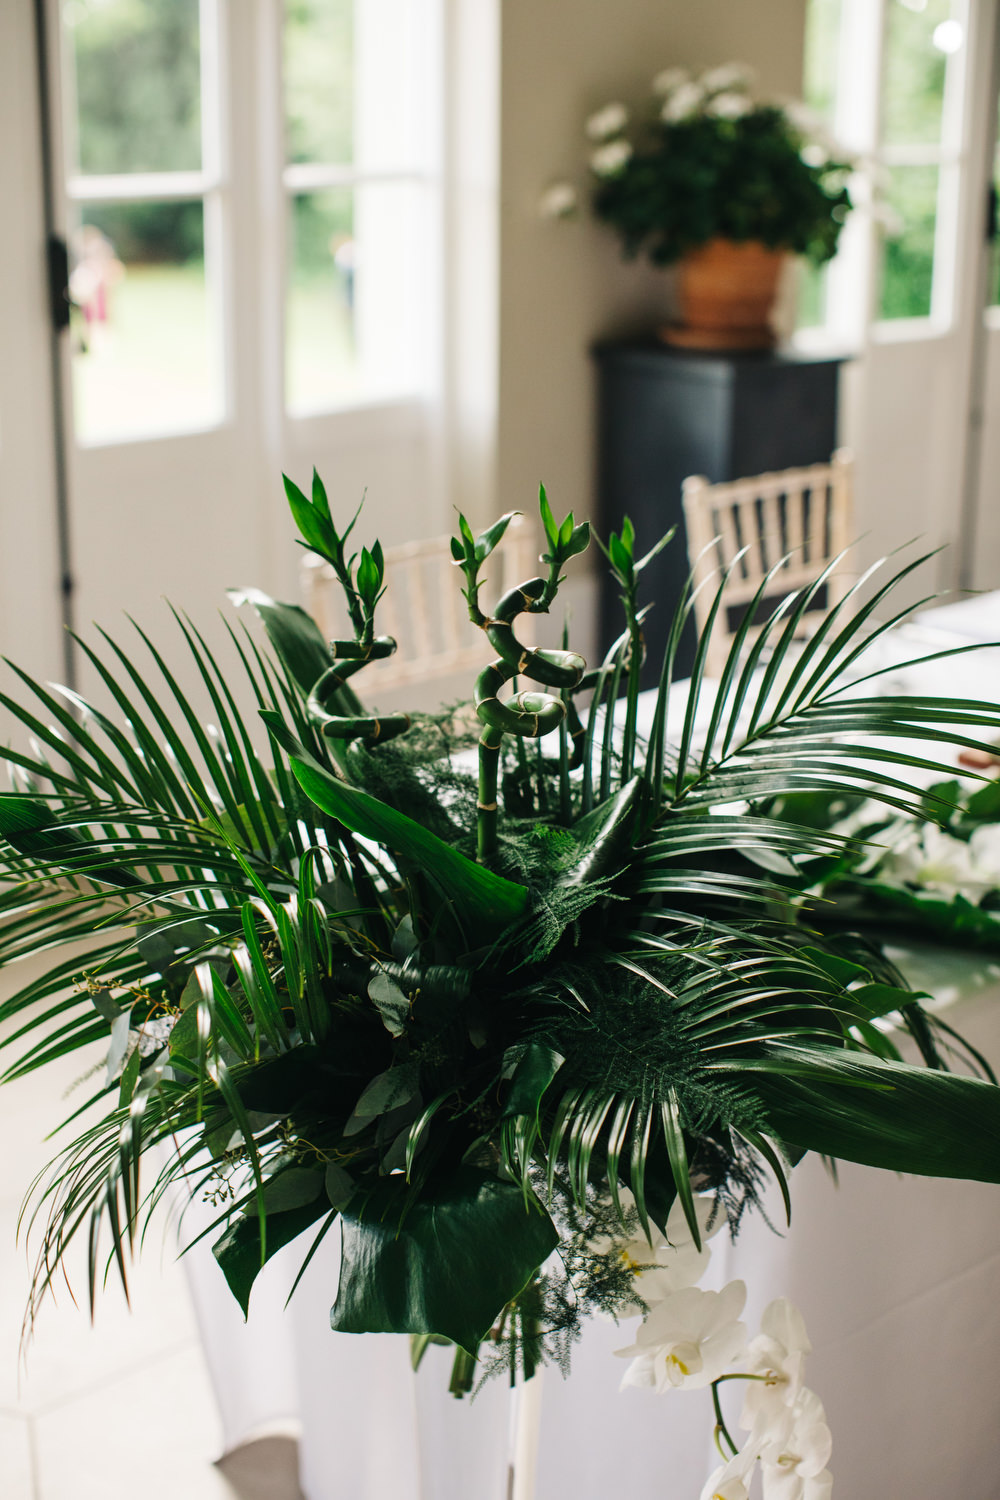 Tropical Centrepiece Flowers Decor Palm Leaves Leaf Greenery Table Deer Park Country House Hotel Wedding Richard Skins Photography